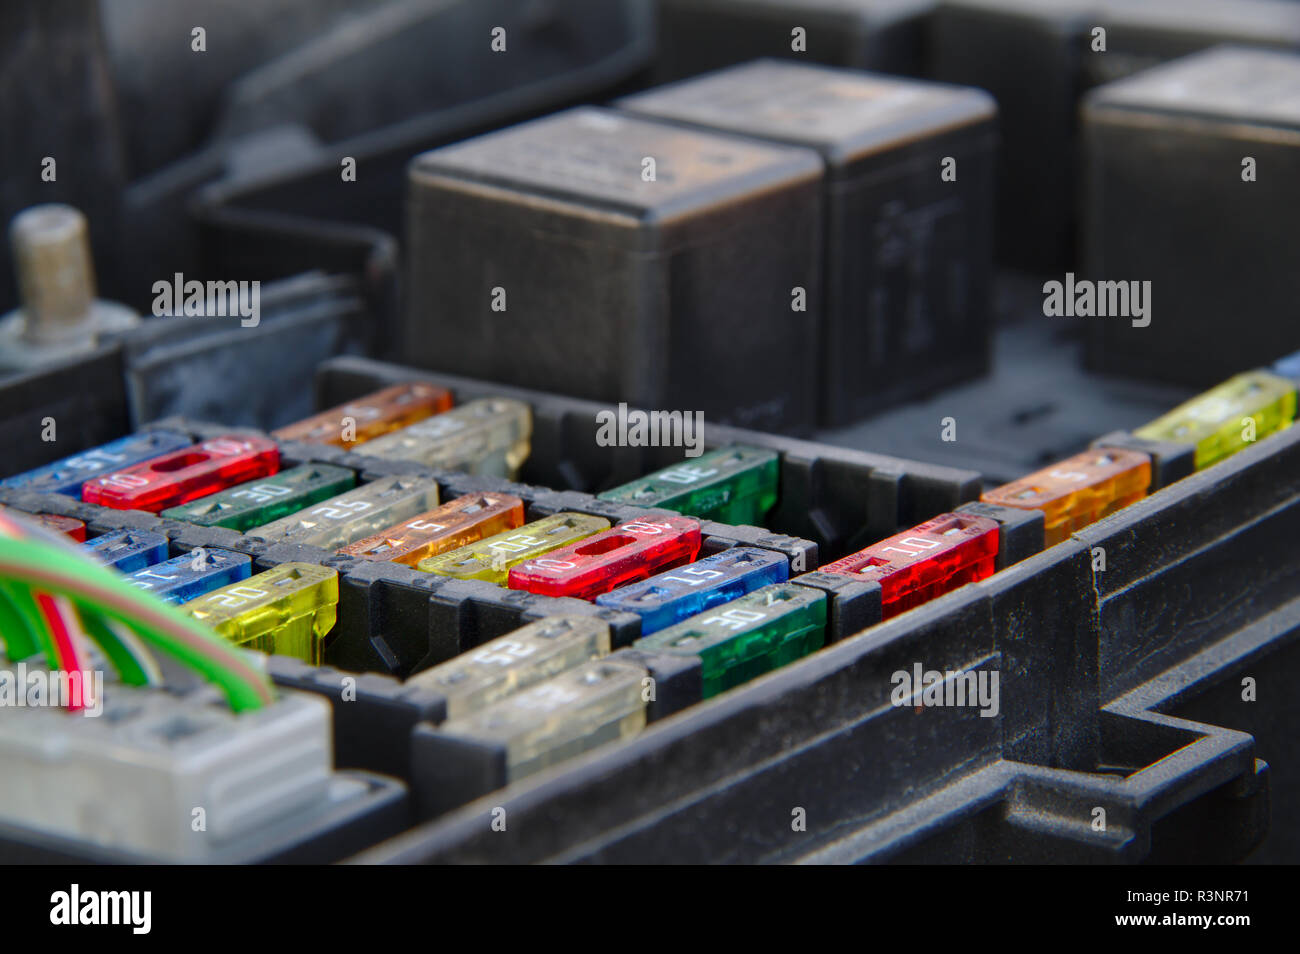 Under hood fusebox of a car with relays. - Stock Image